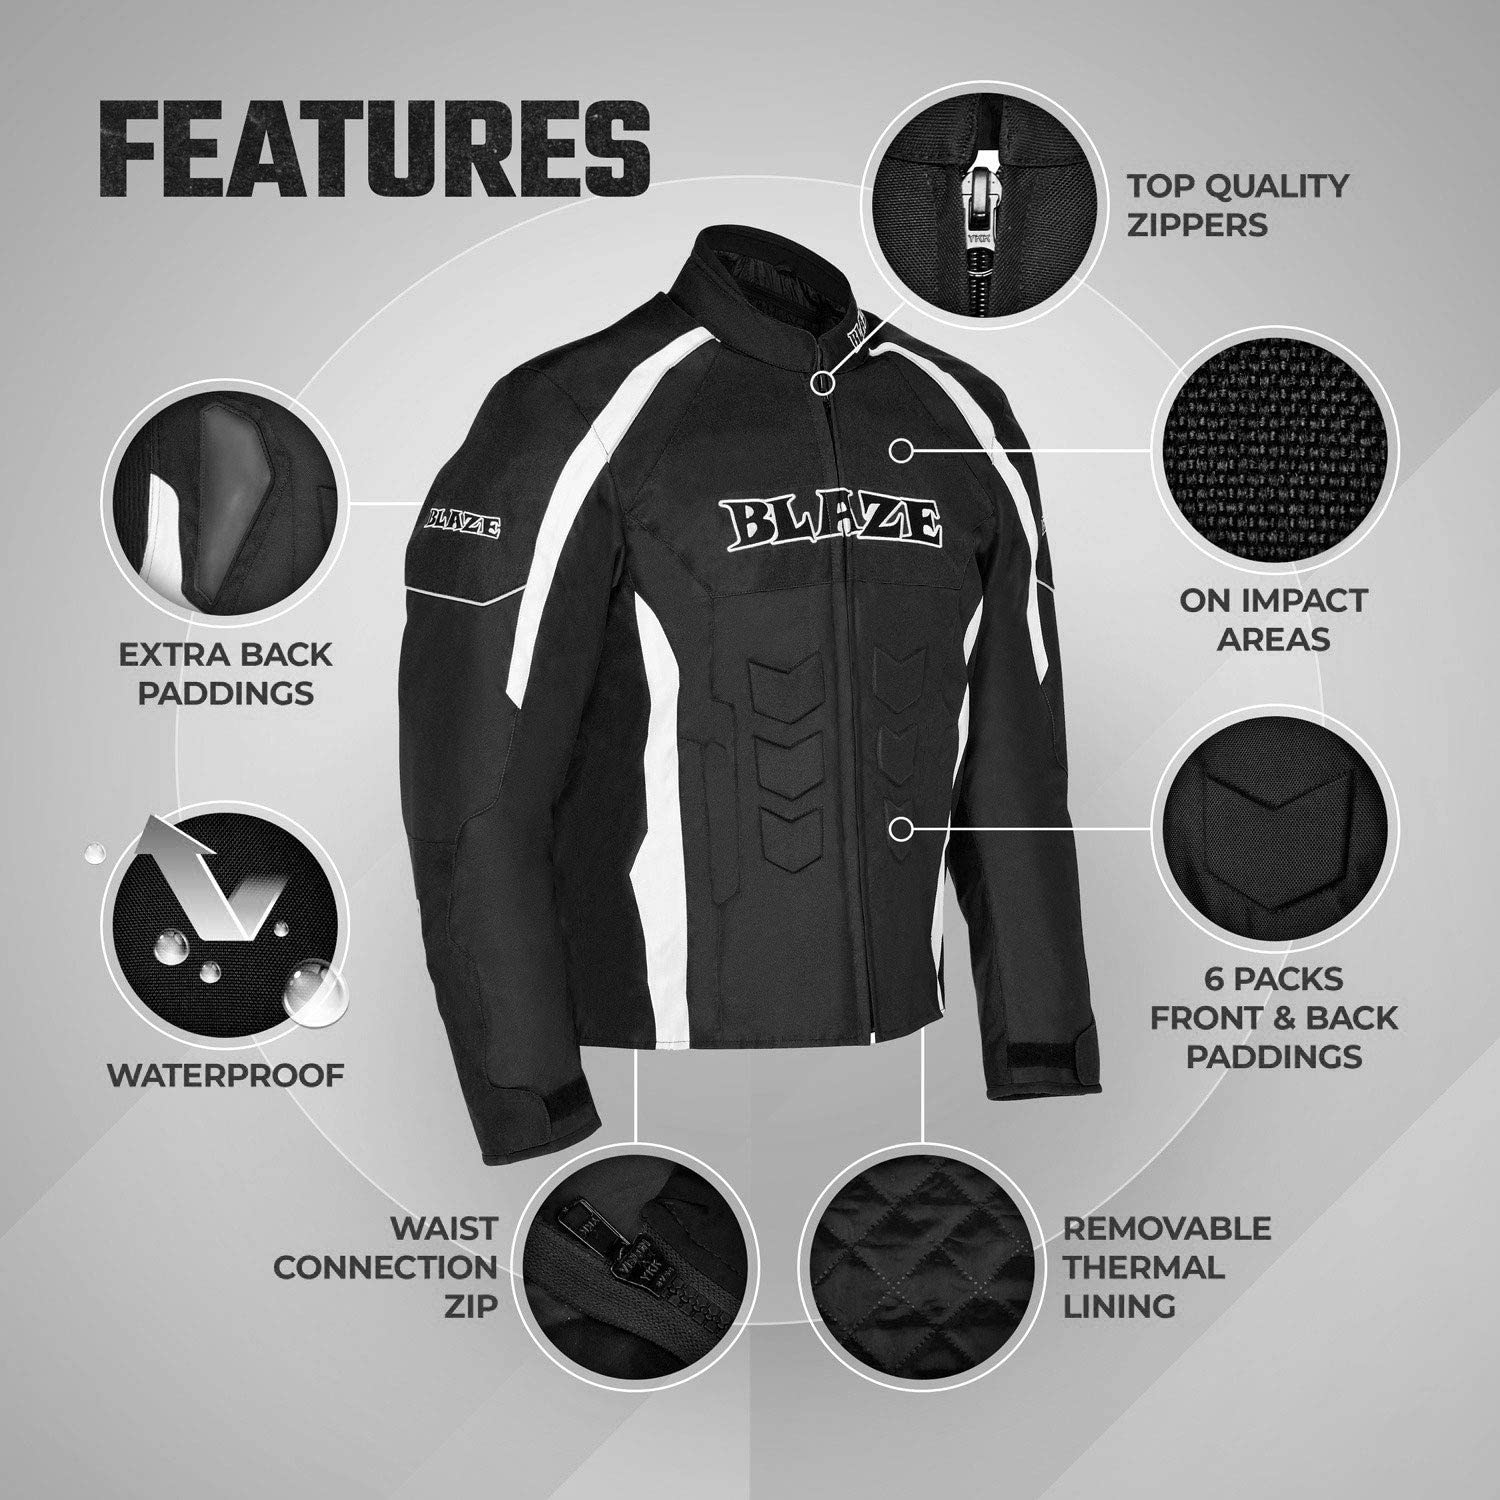 Black, 3XL Motorbike accessories for men women Winter Summer Armour Motorcycle Riding padded Breathable Jacket Waterproof Textile Full Body Protection Gear